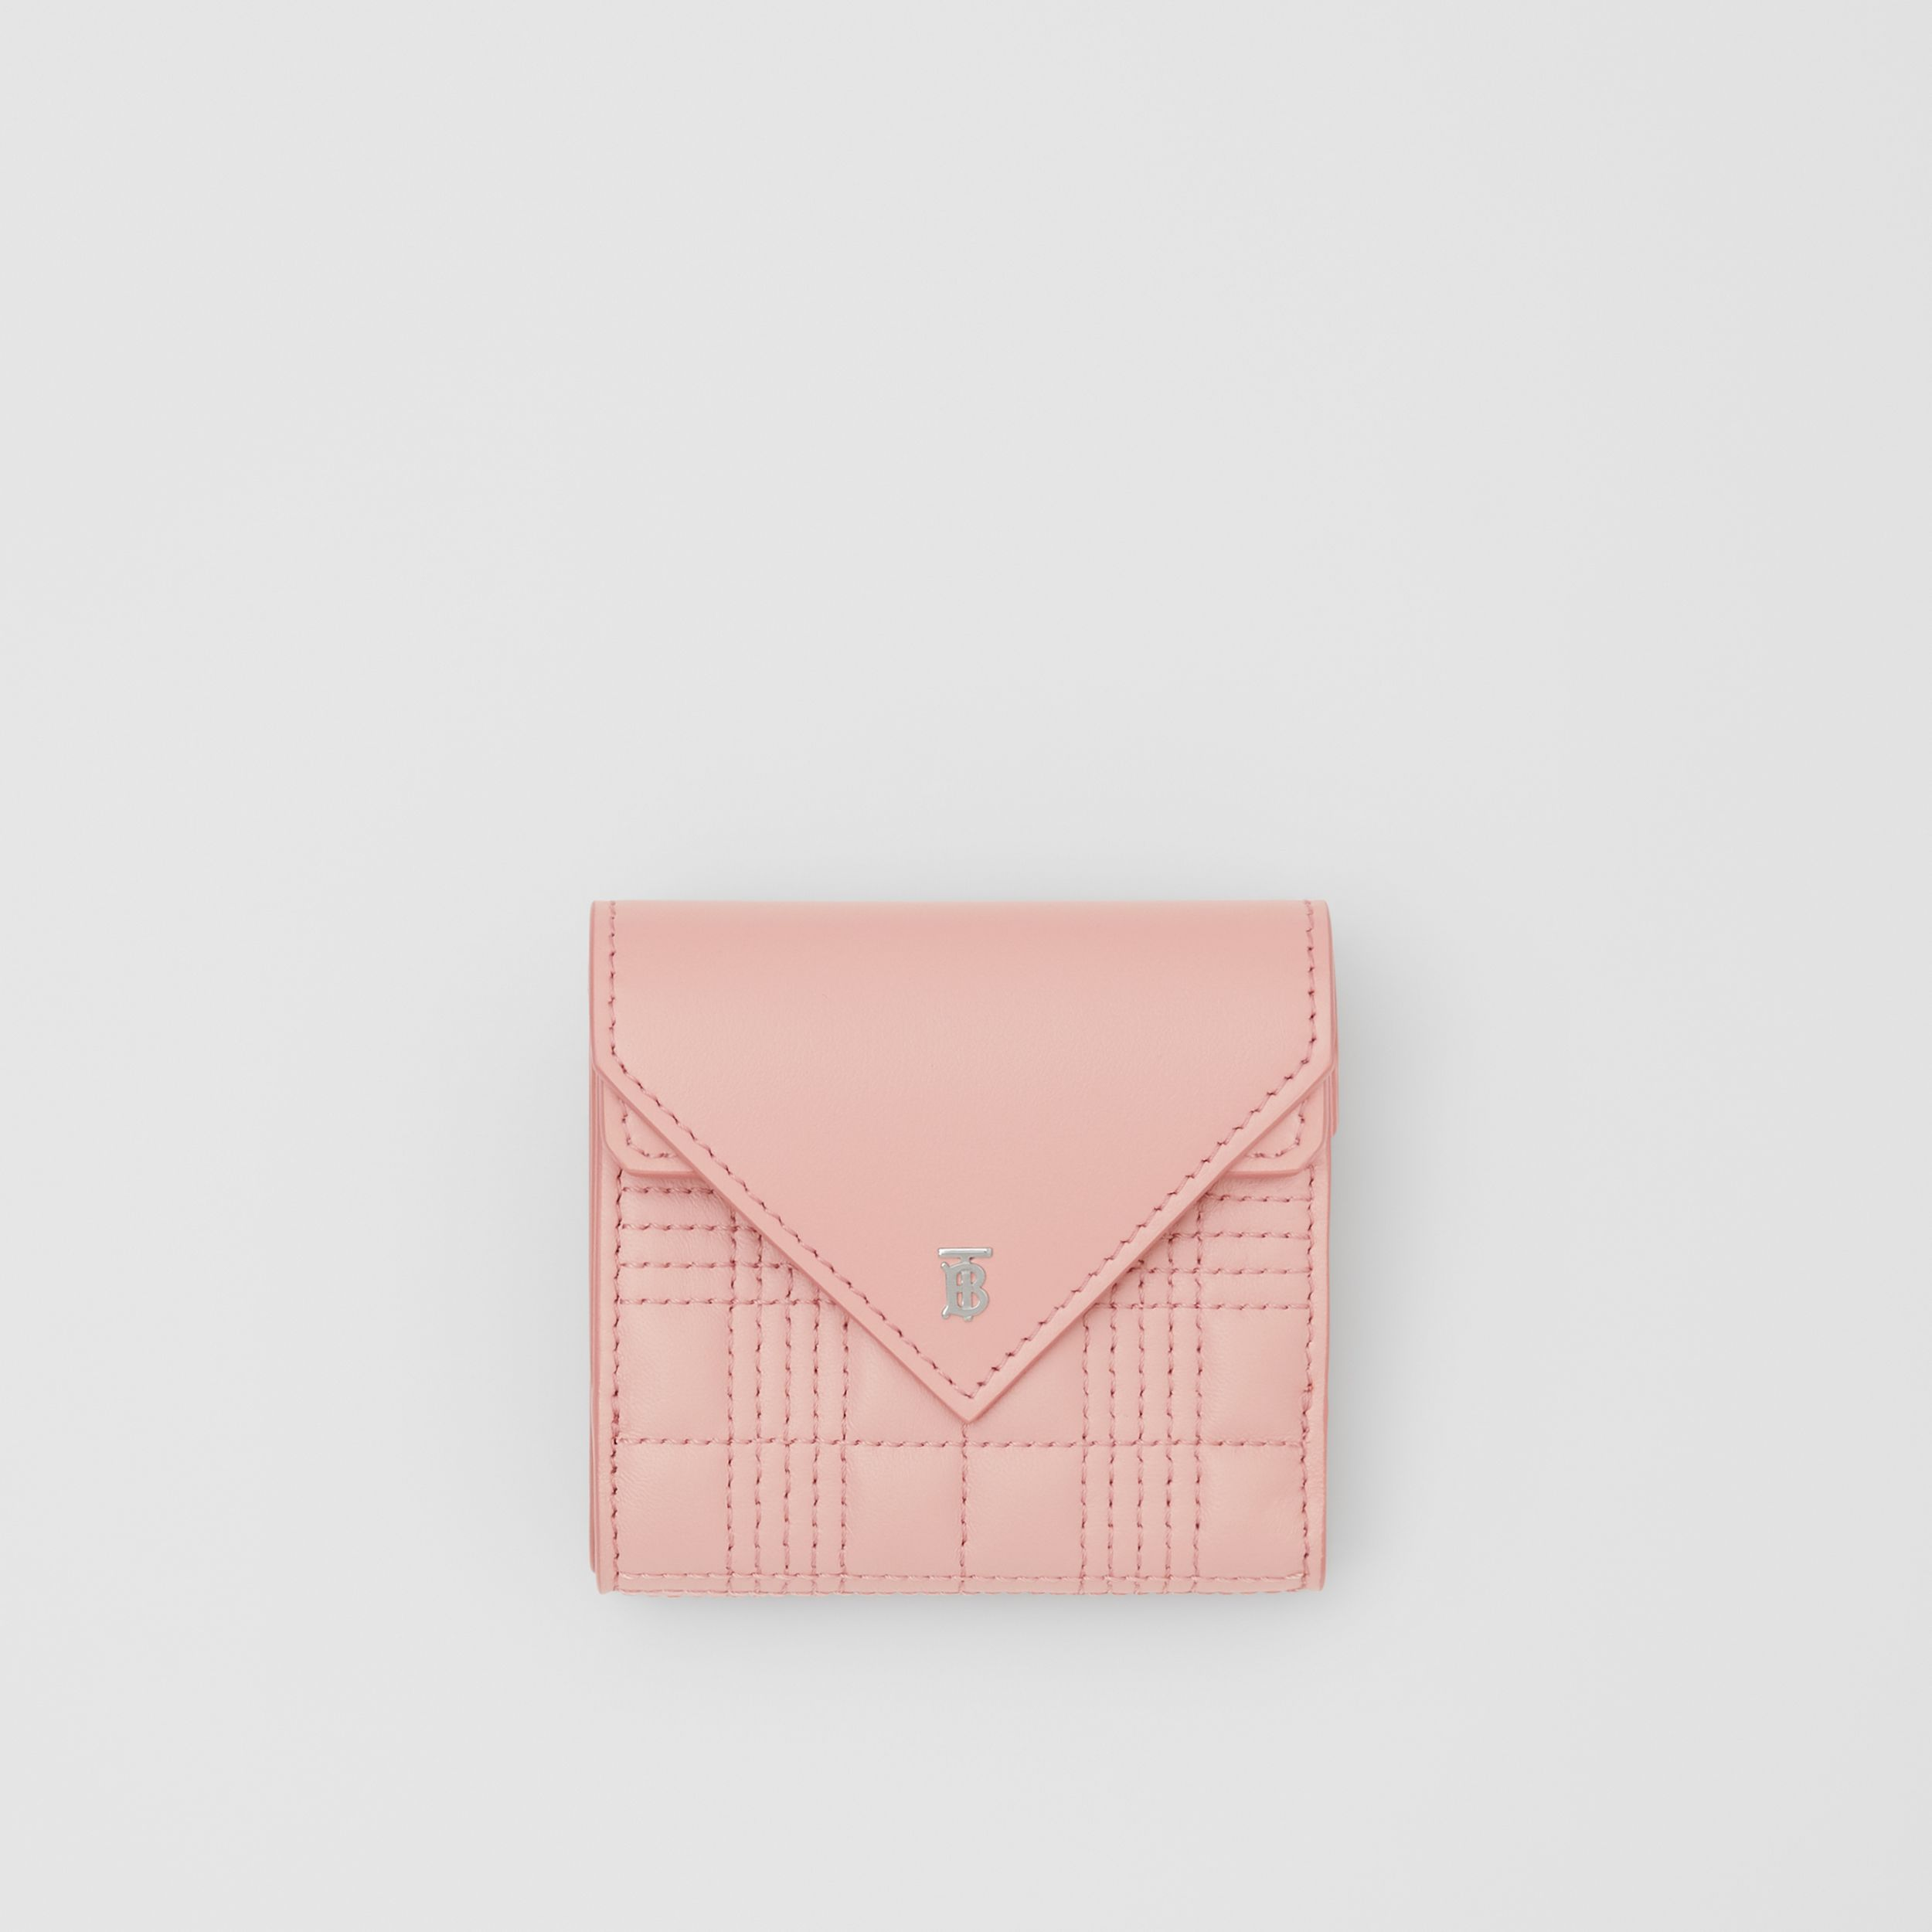 Quilted Lambskin Folding Wallet in Blush Pink - Women | Burberry Hong Kong S.A.R. - 1